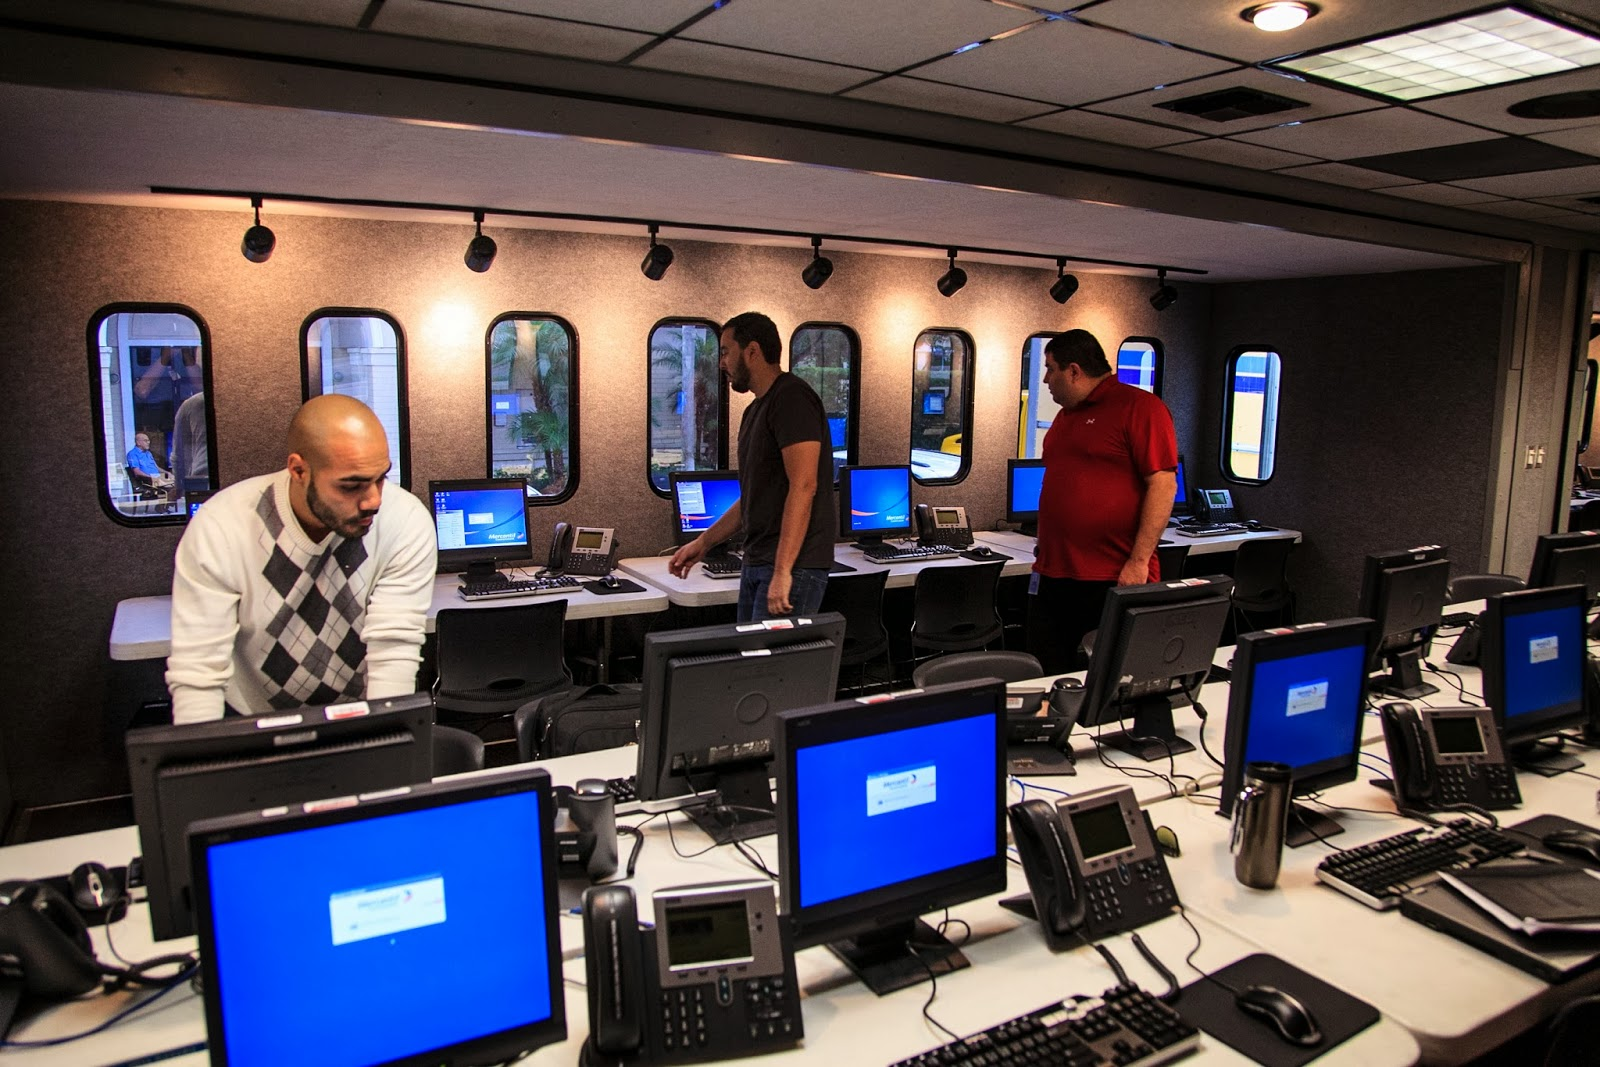 Men setting up computers in mobile workspace